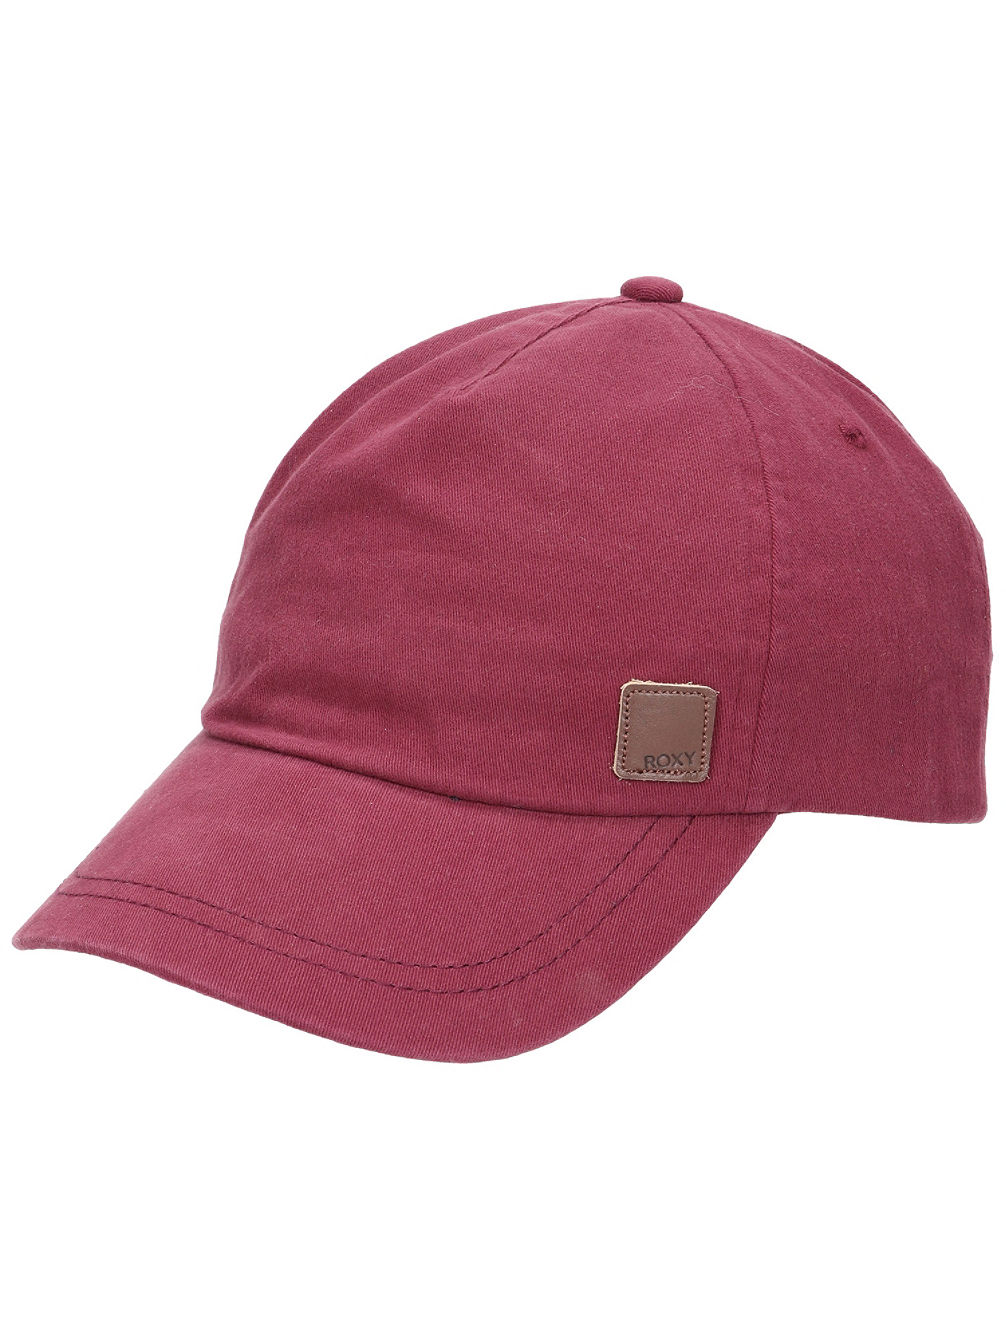 8cde1c66458e22 Buy Roxy Extra Innings A Cap online at Blue Tomato